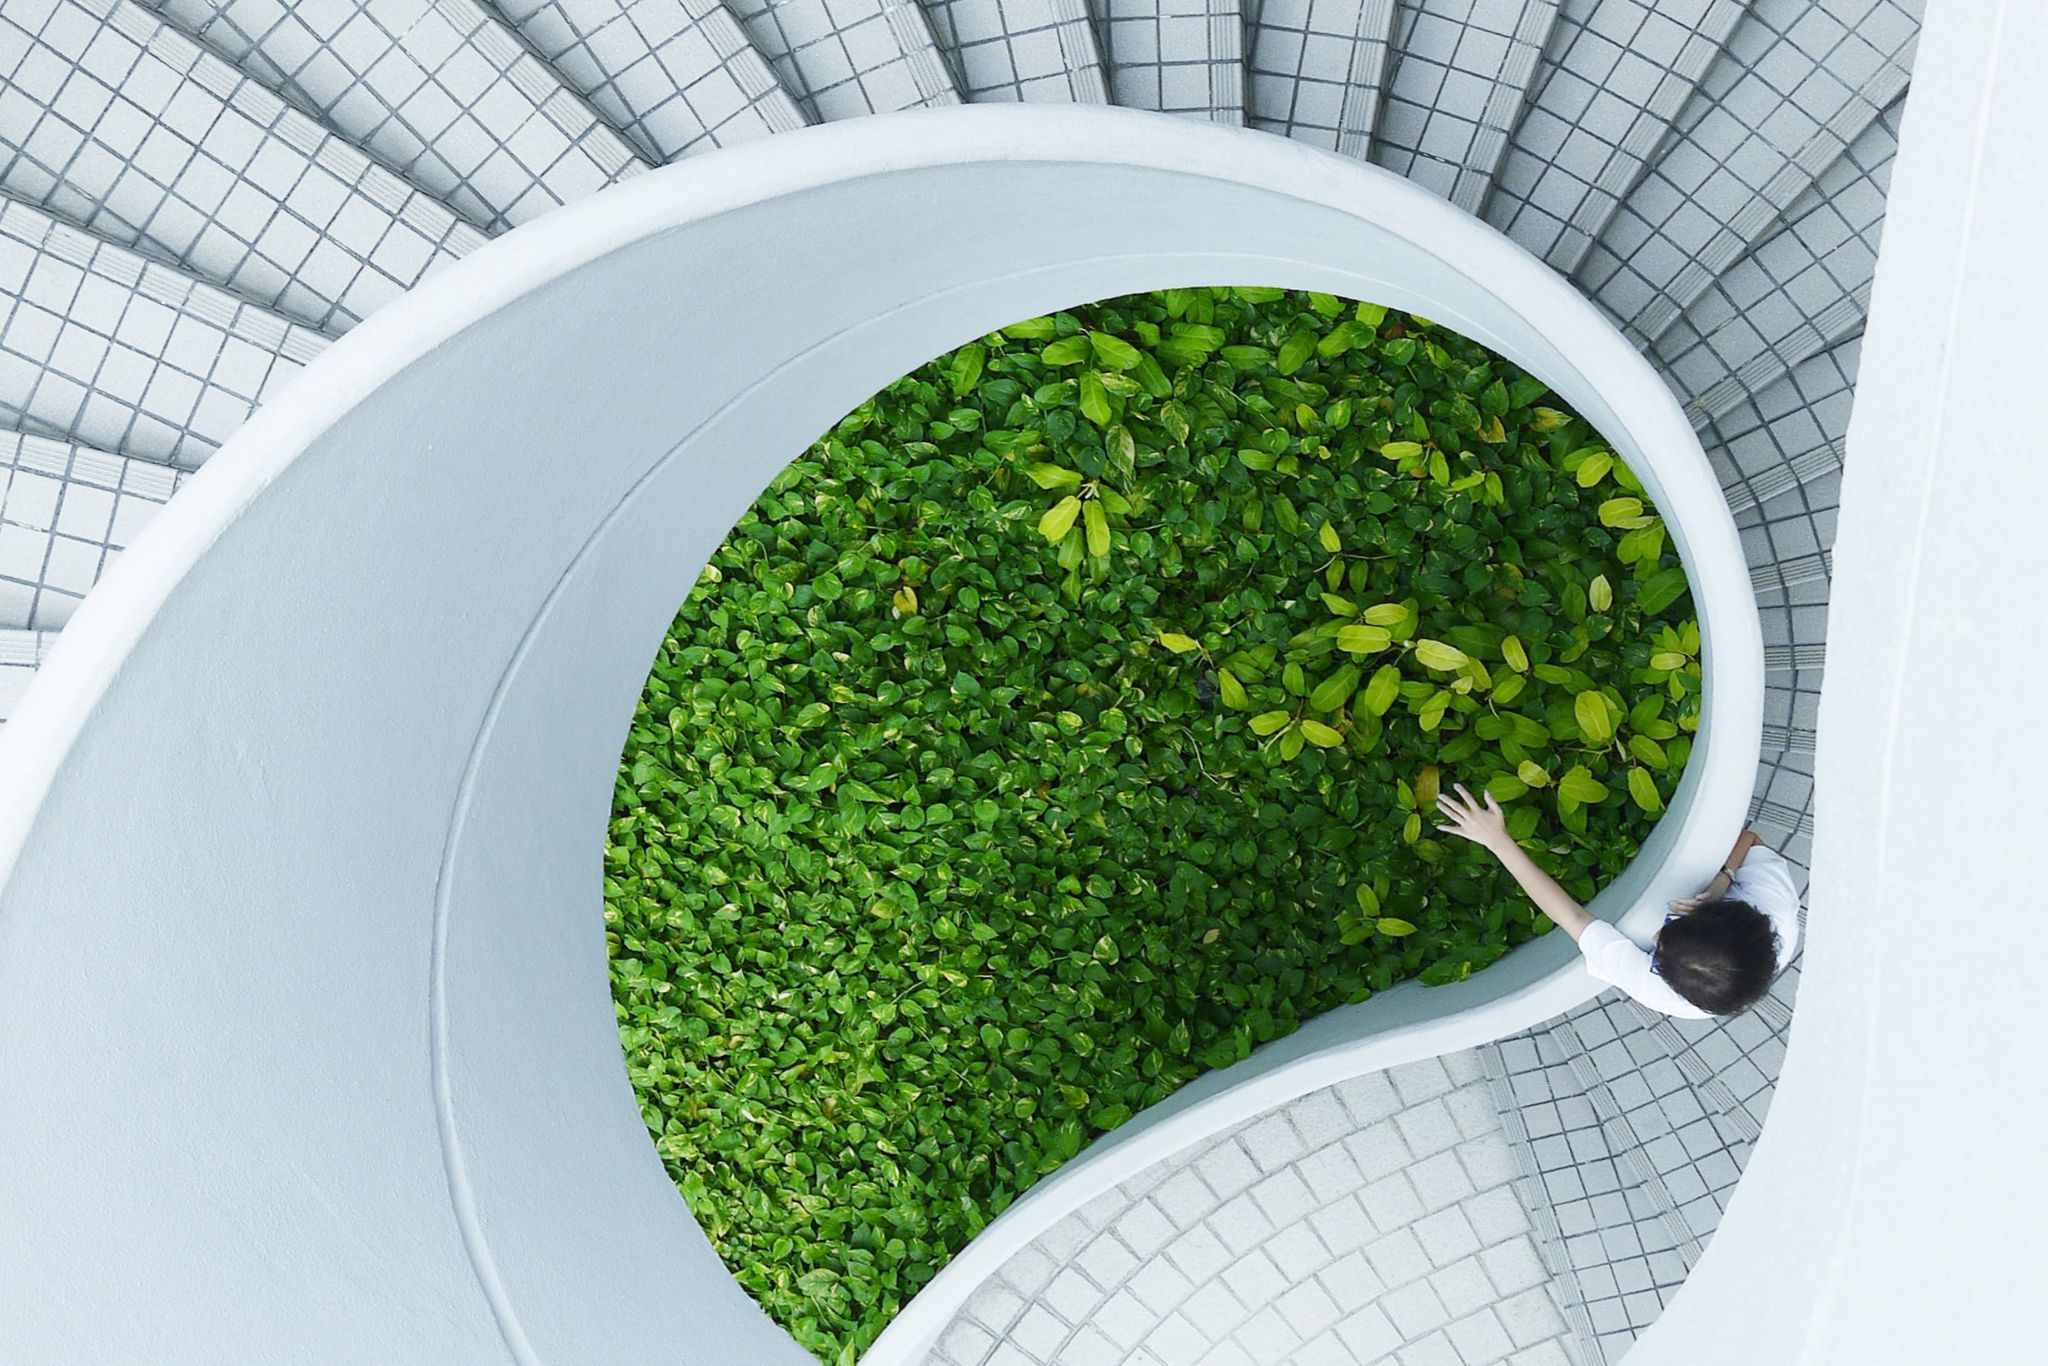 The stairwell of a modern office building playfully wrapping around a bed of plants.